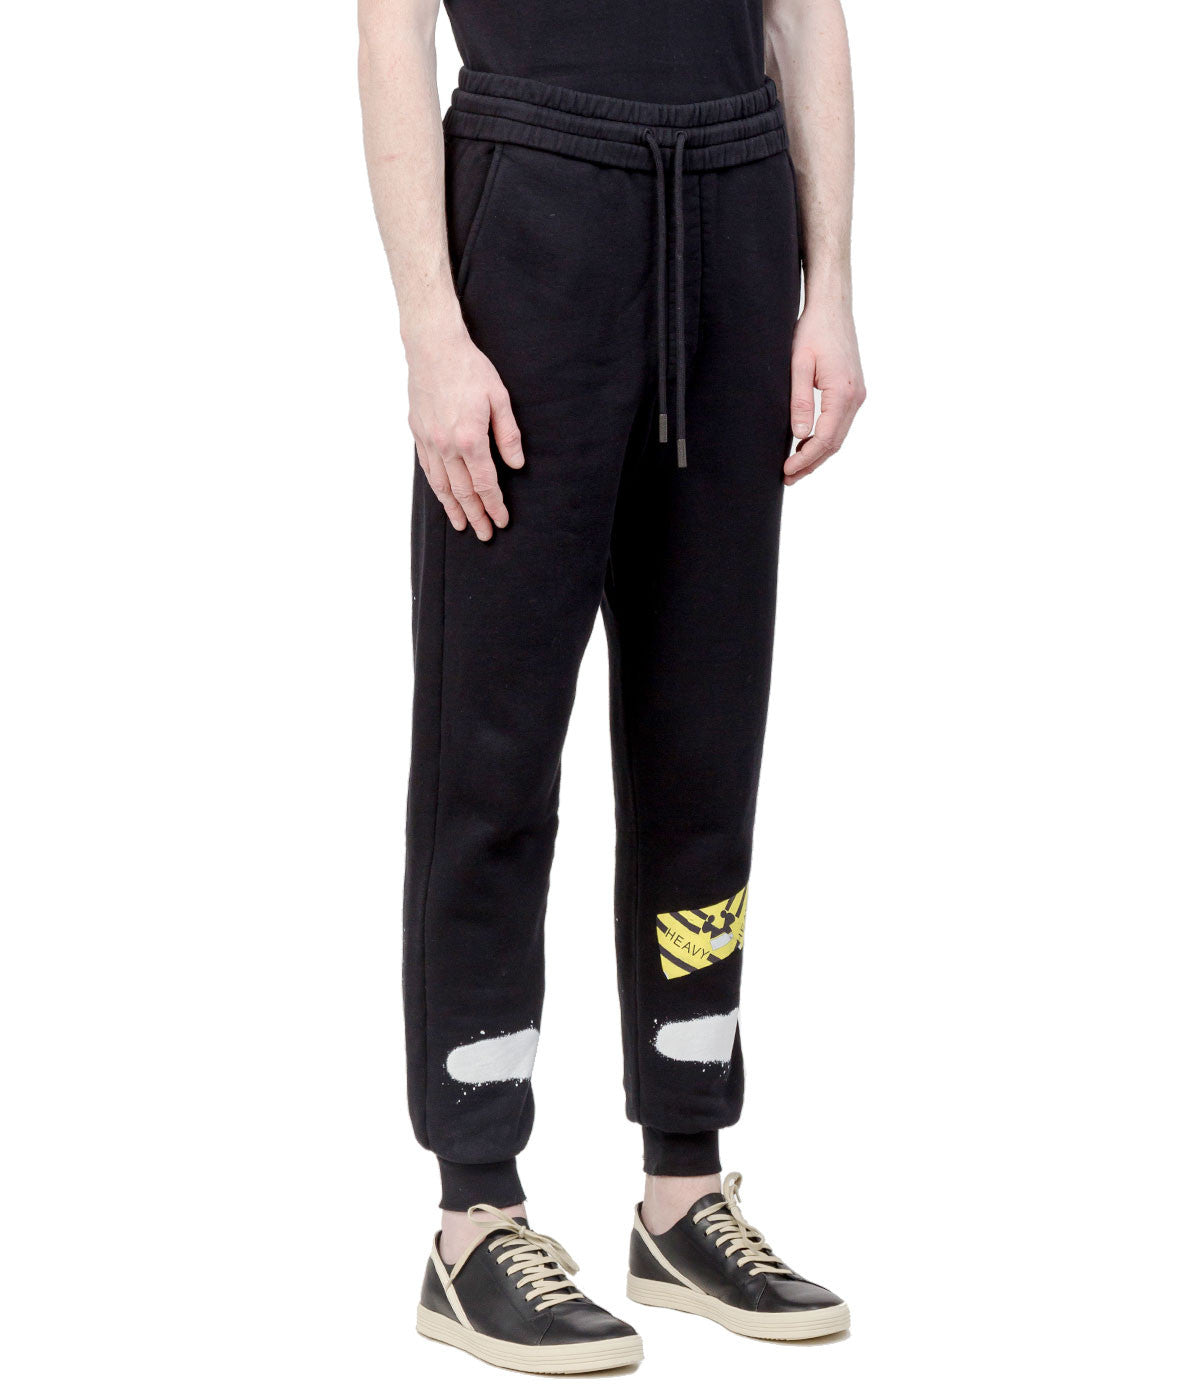 Black Spray Painted Sweatpants